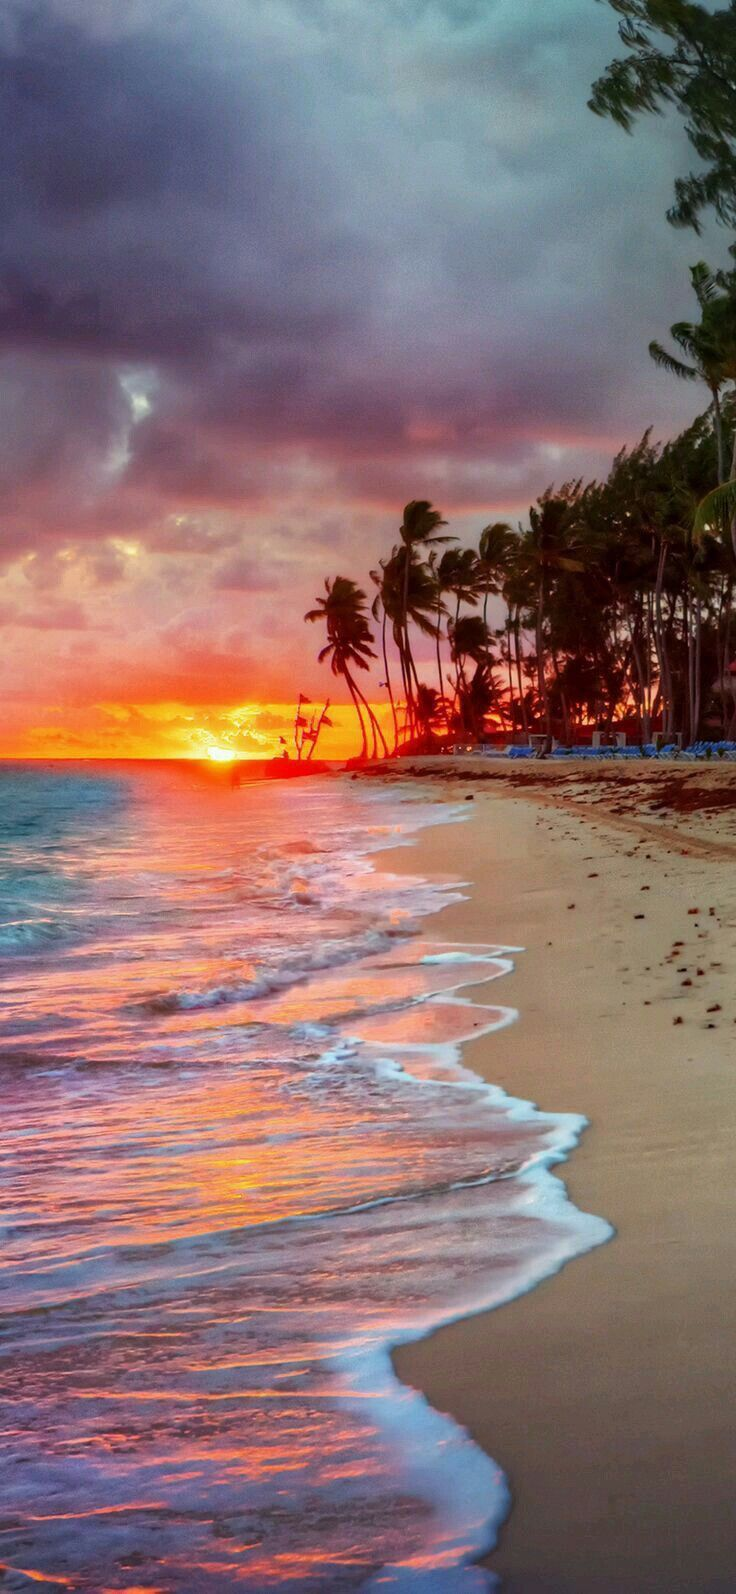 Summer Sunset Vacation Tropical Photography Aesthetic Tropicalbeachpictures Beautiful Beach Pictures Beautiful Landscapes Landscape Photography